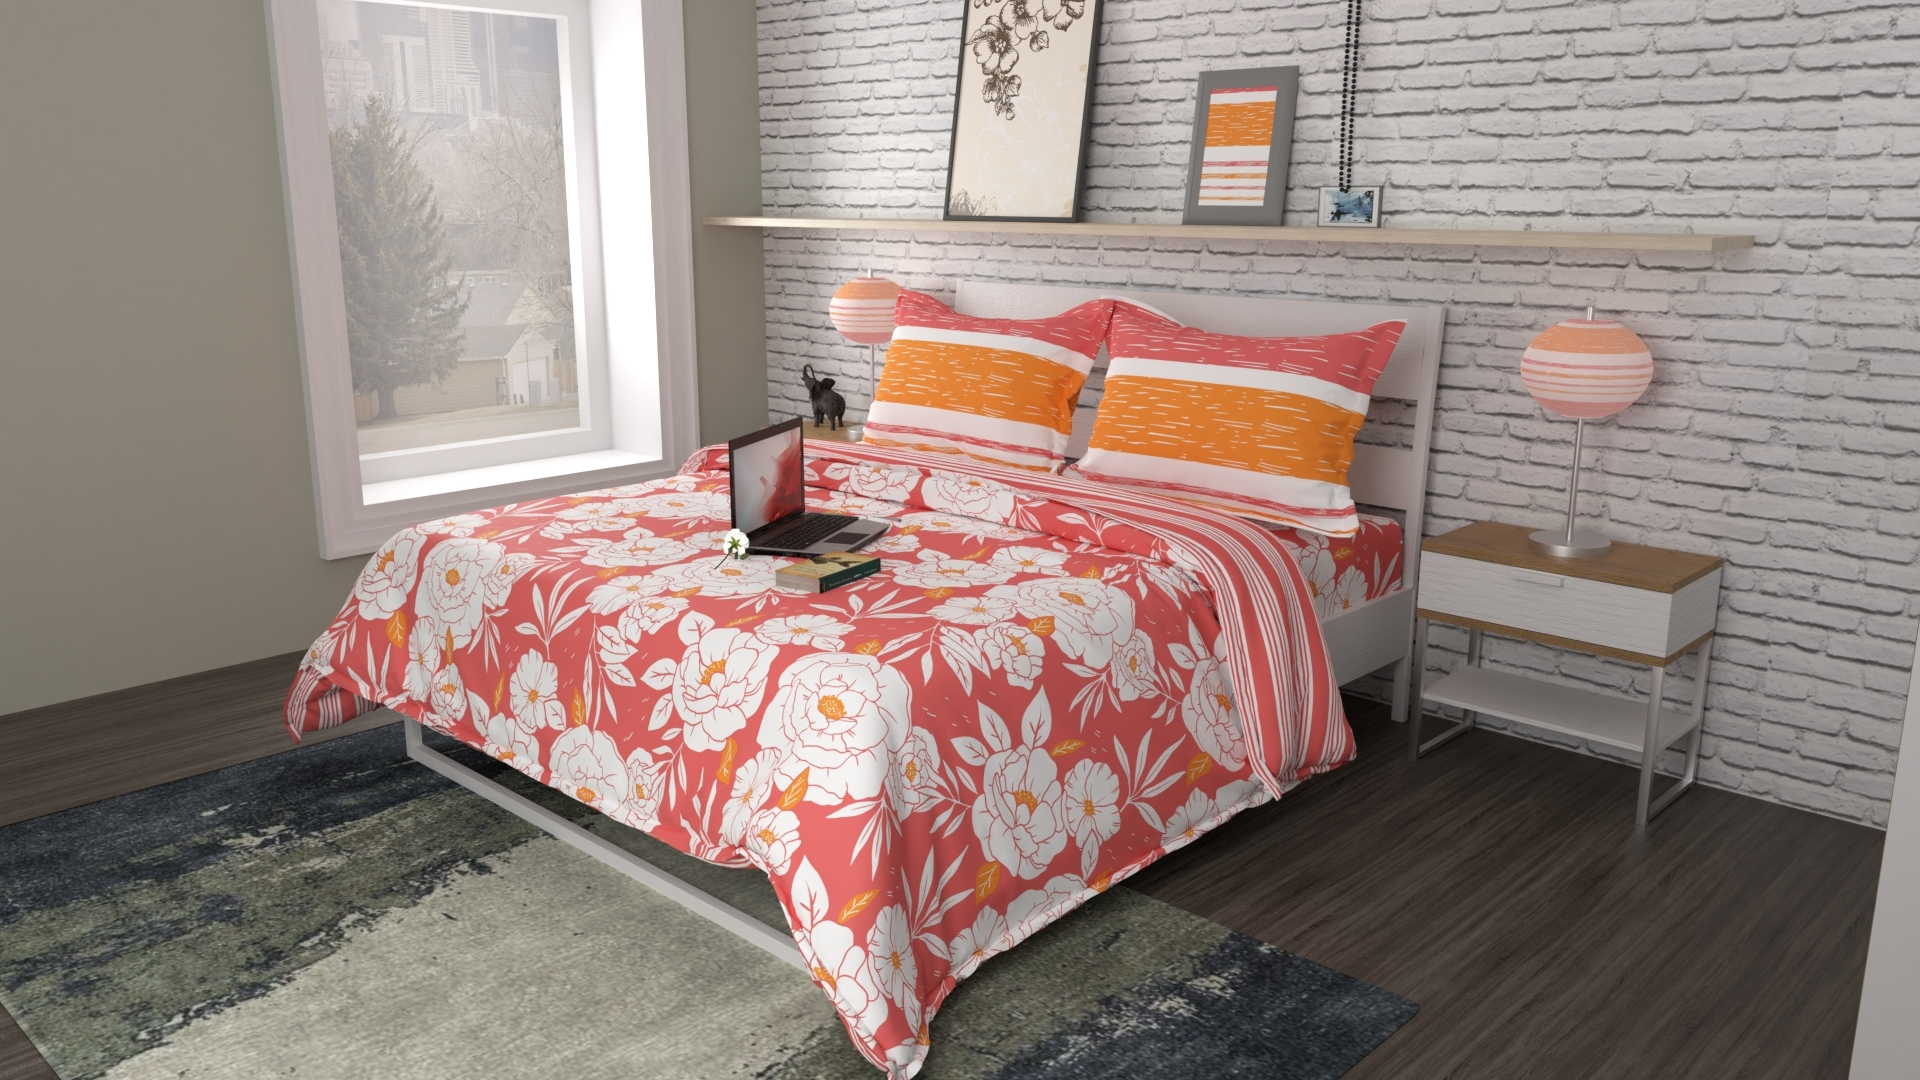 Mix and Match Your Way to Create The Perfect Bed